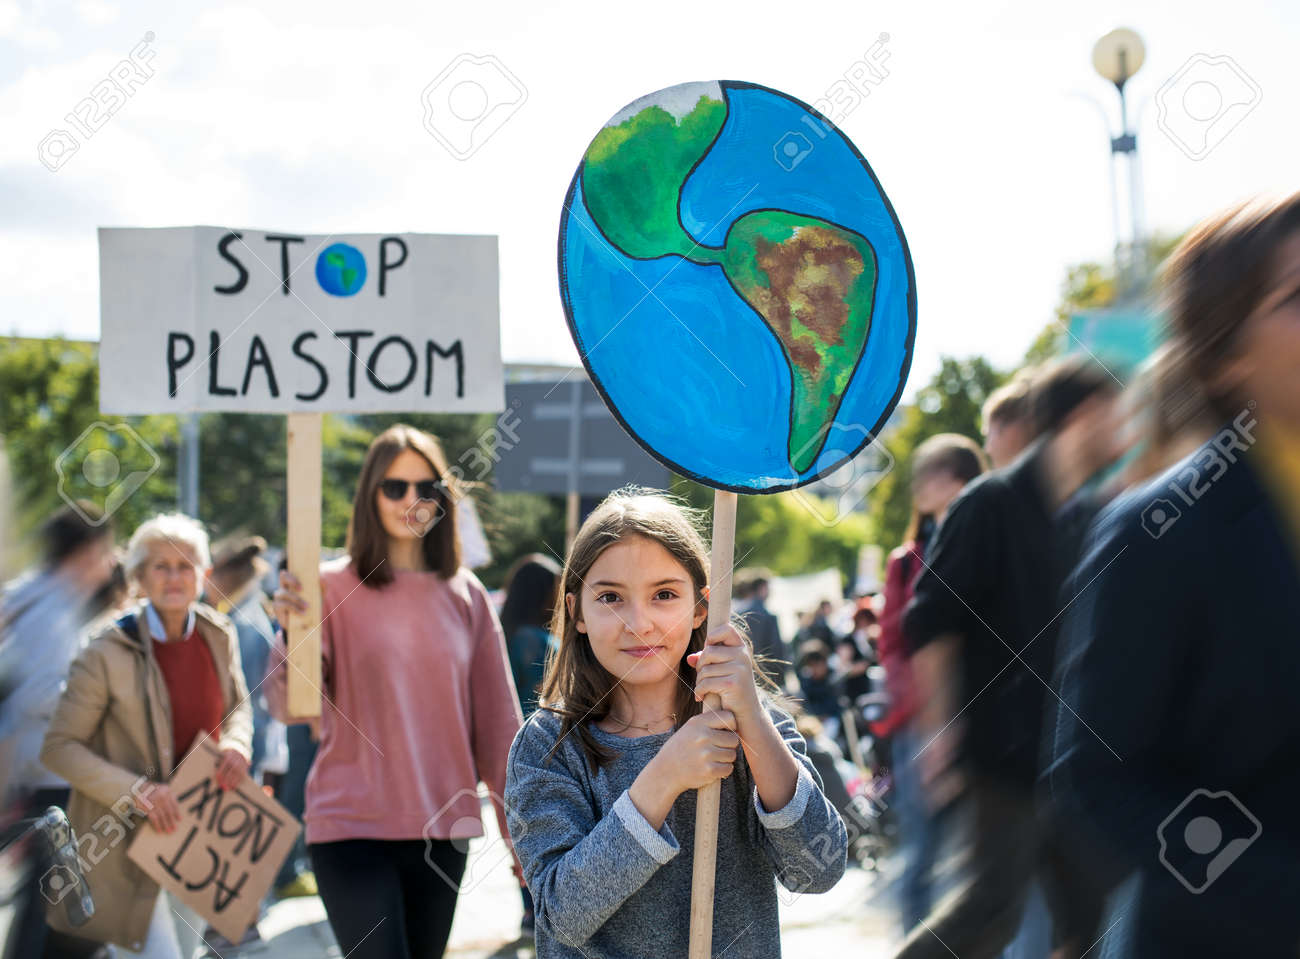 People with placards and posters on global strike for climate change. - 131464224